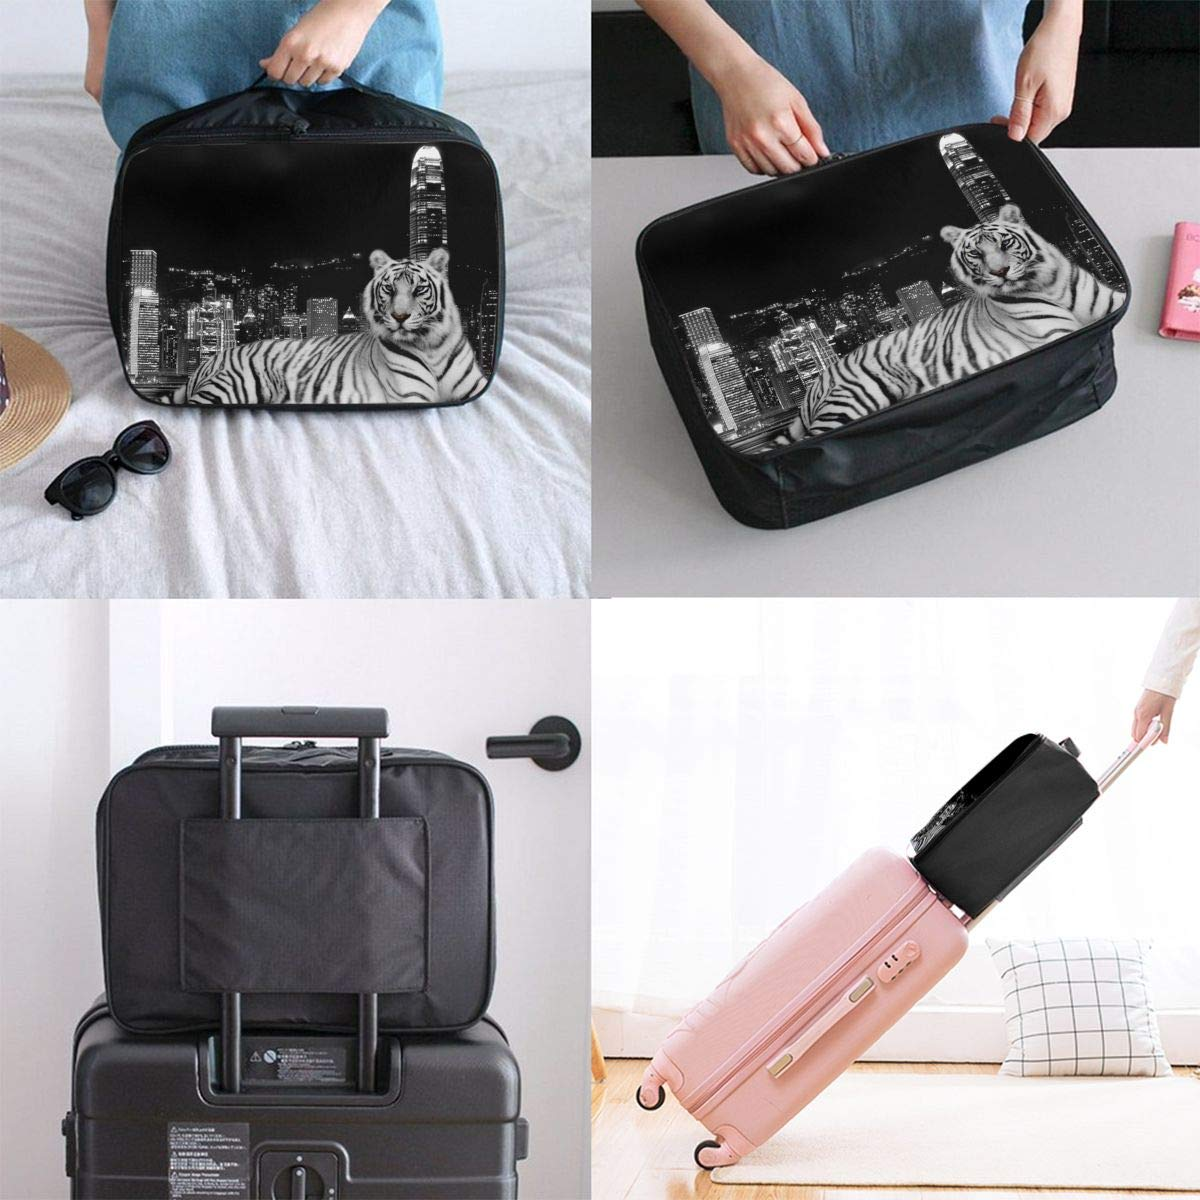 Travel Luggage Duffle Bag Lightweight Portable Handbag Animals Tiger Print Large Capacity Waterproof Foldable Storage Tote